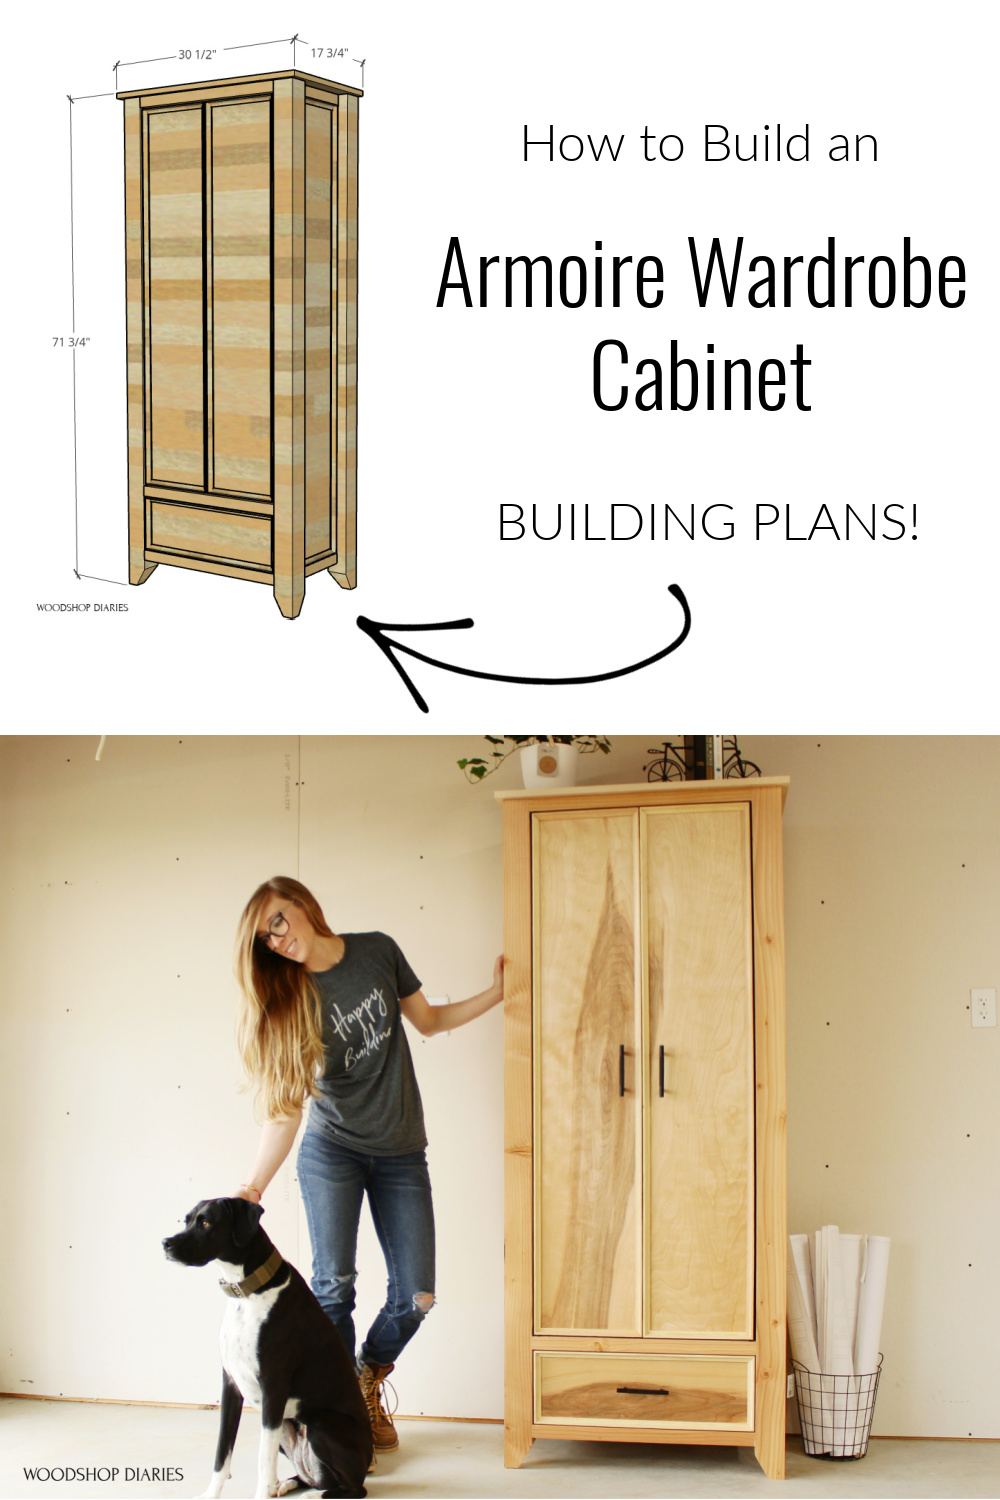 """Pinterest graphic showing overall dimension diagram at top and finished project at bottom with text """"how to build an Armoire Wardrobe Cabinet Building Plans!"""""""